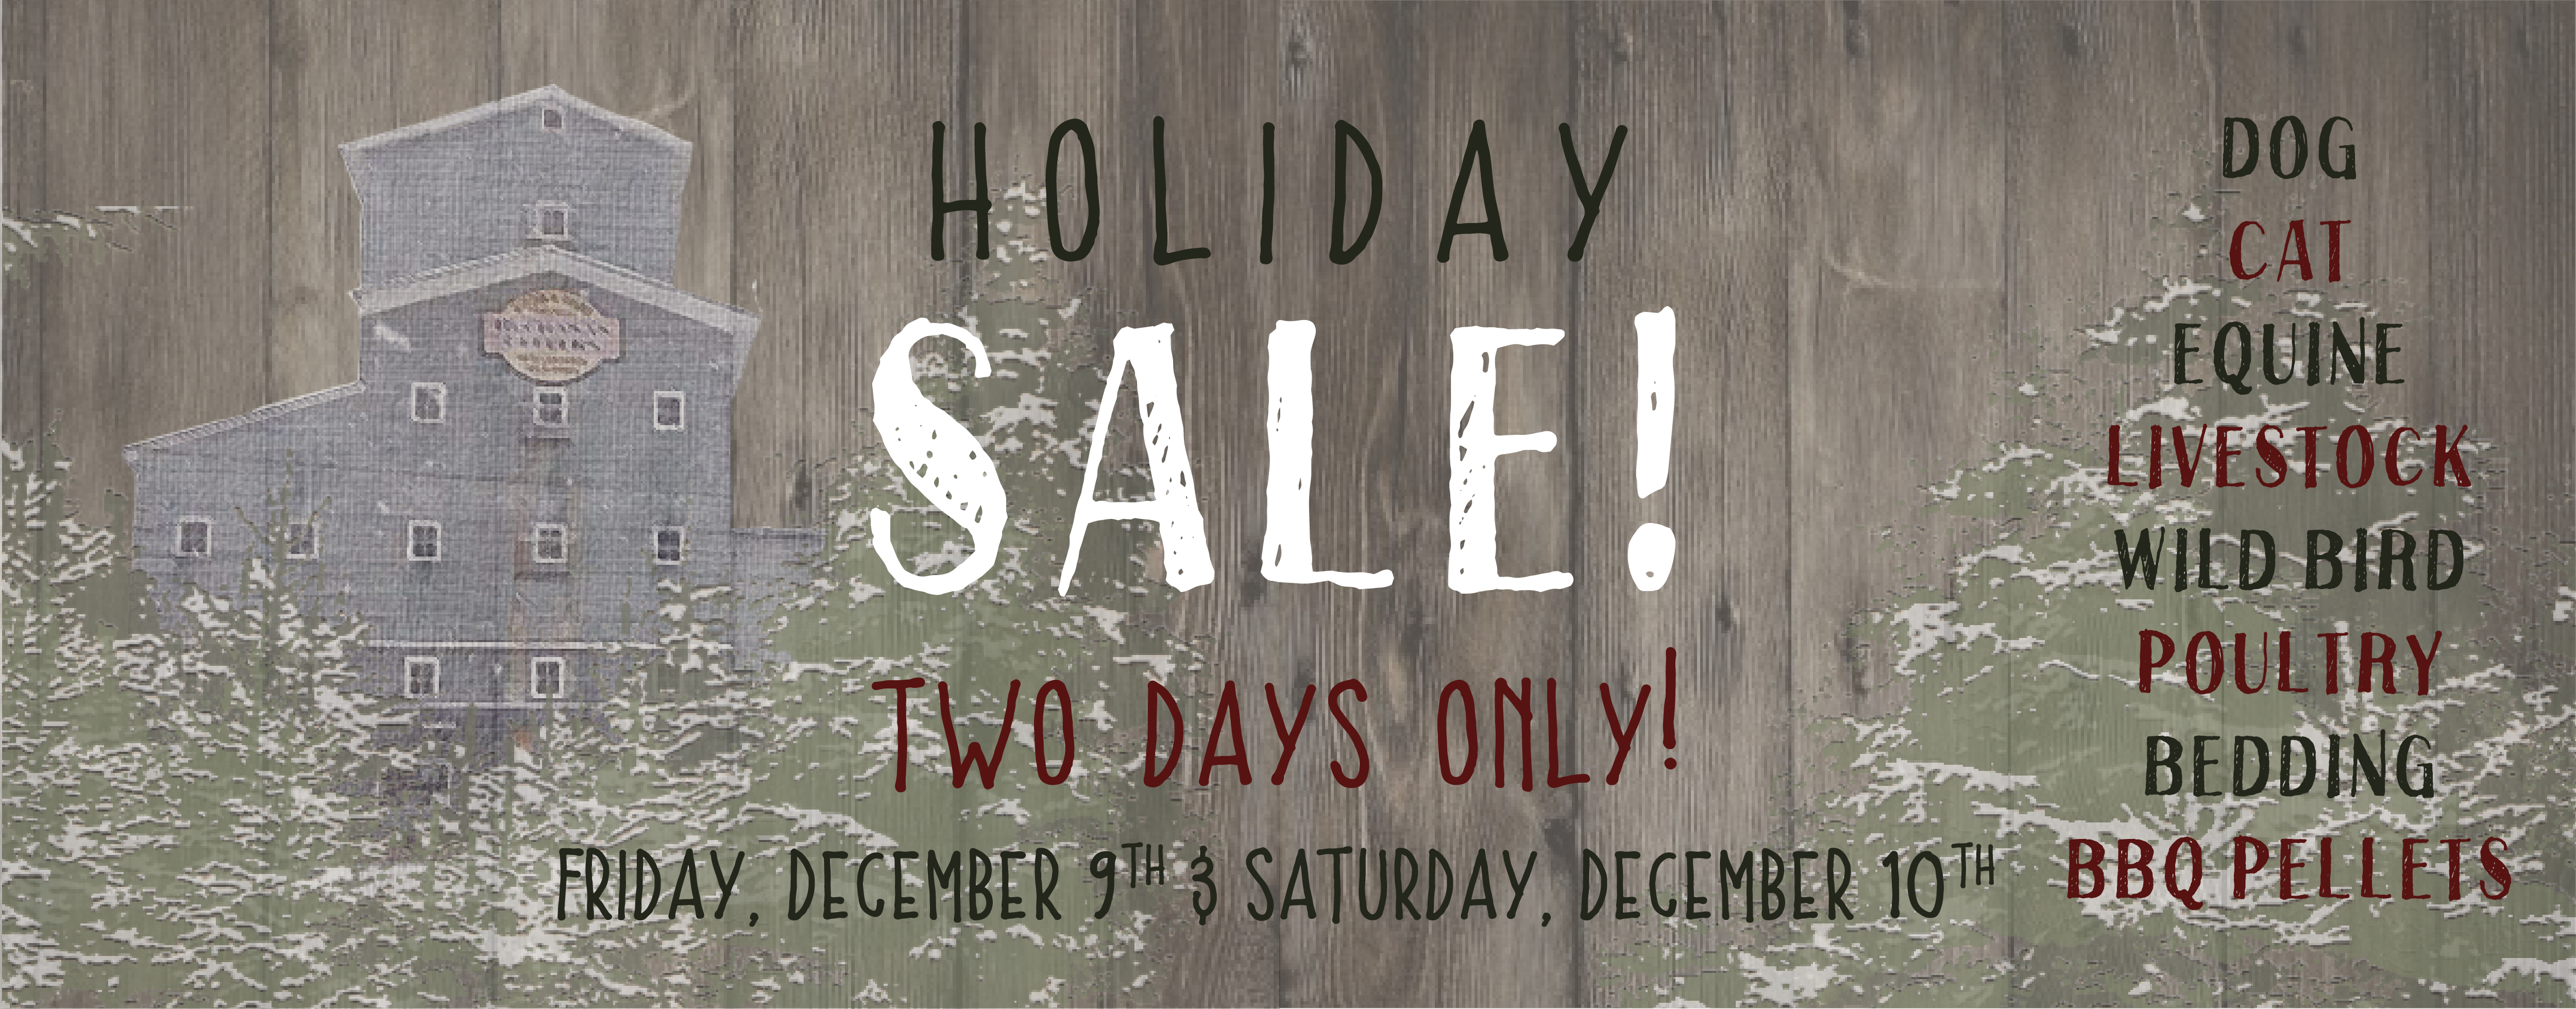 2016-holiday-sale-01